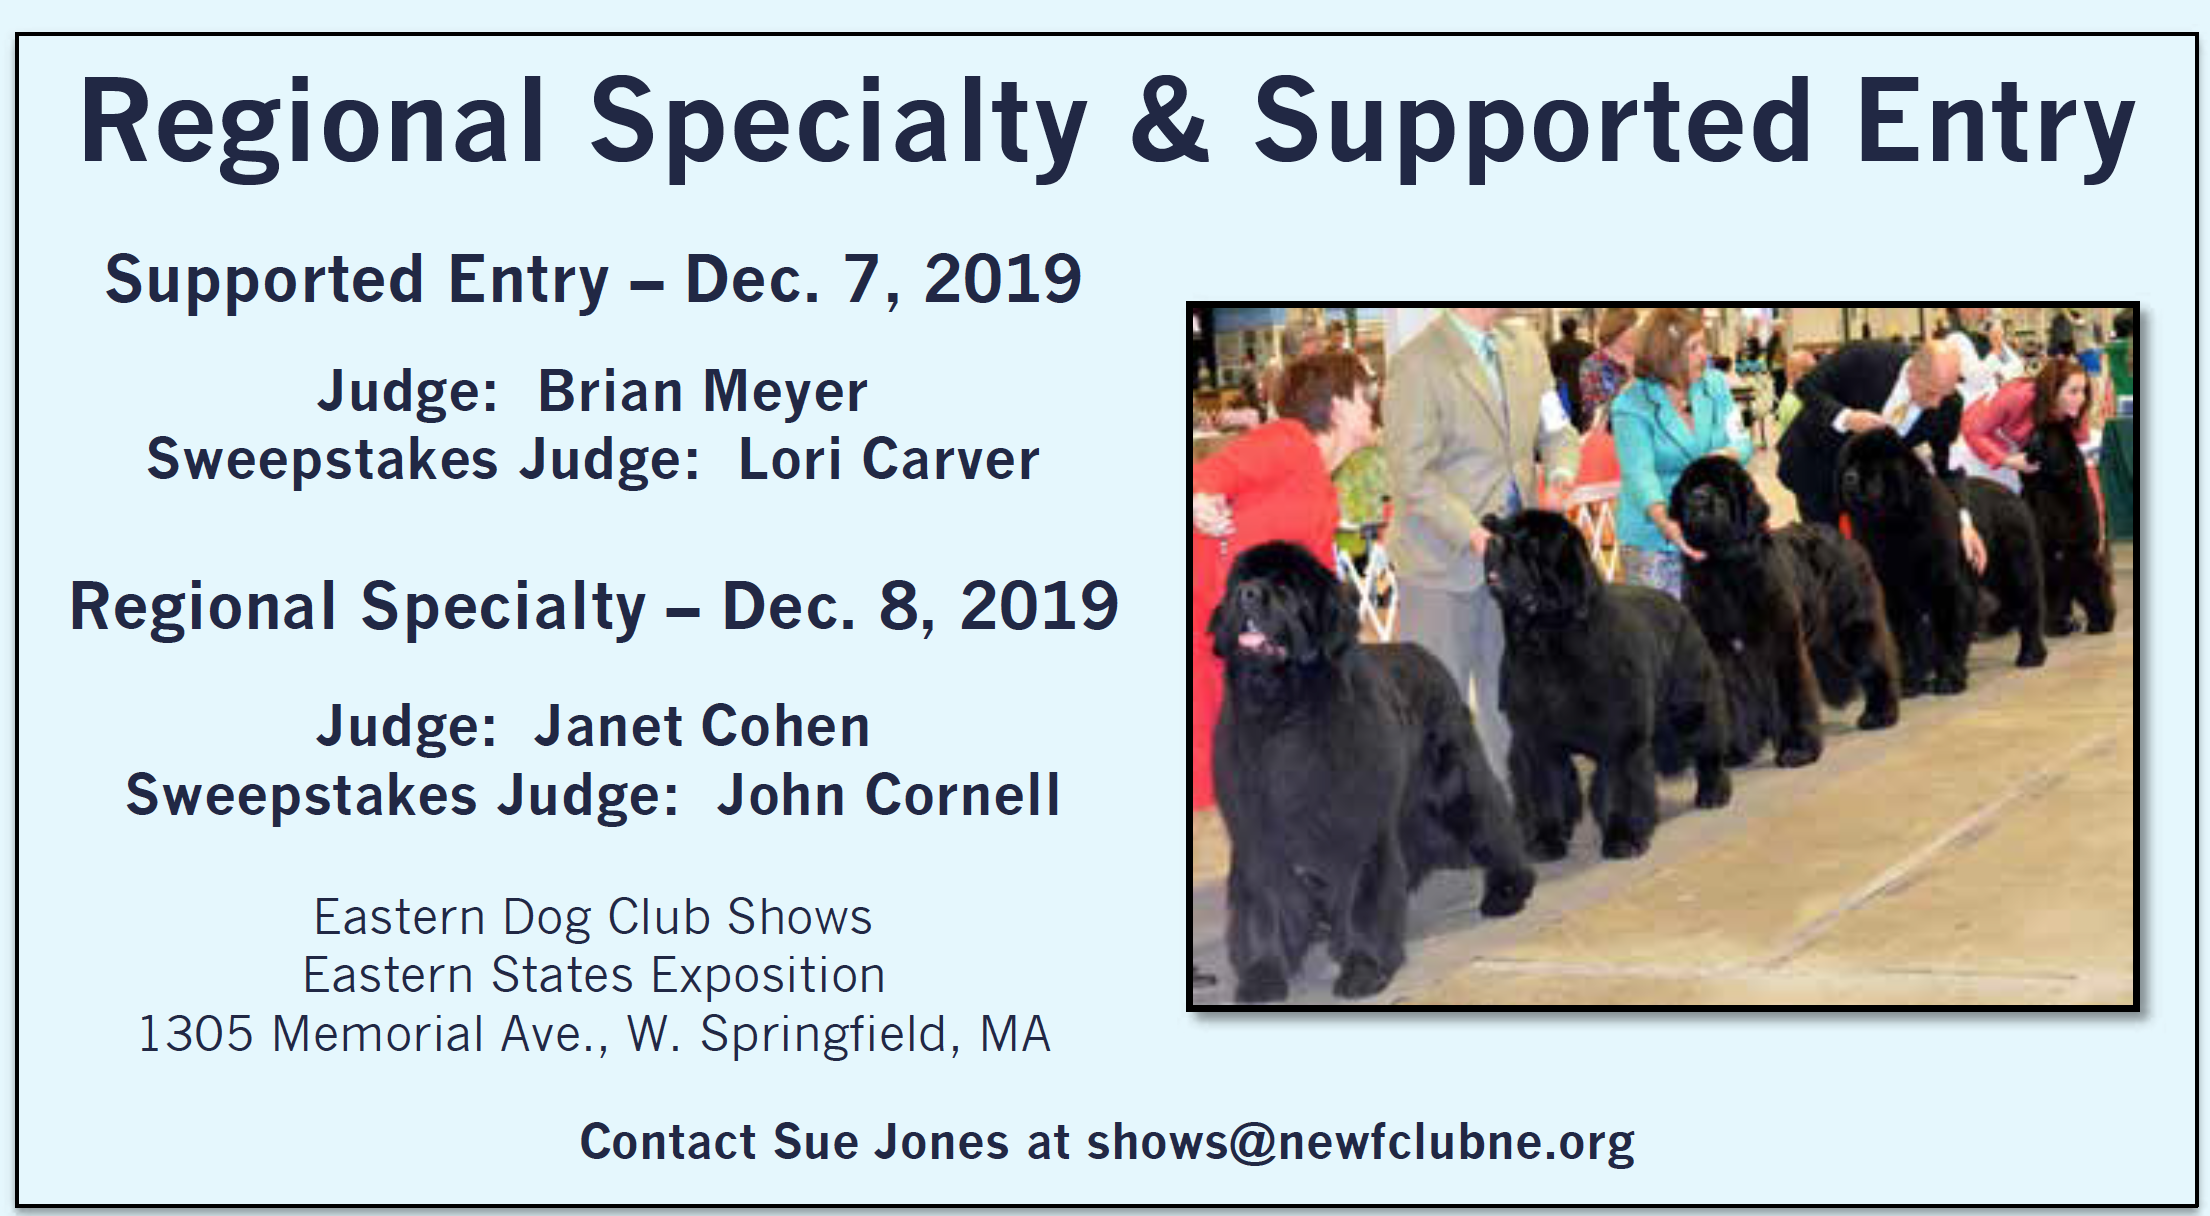 Specialty & supported entry